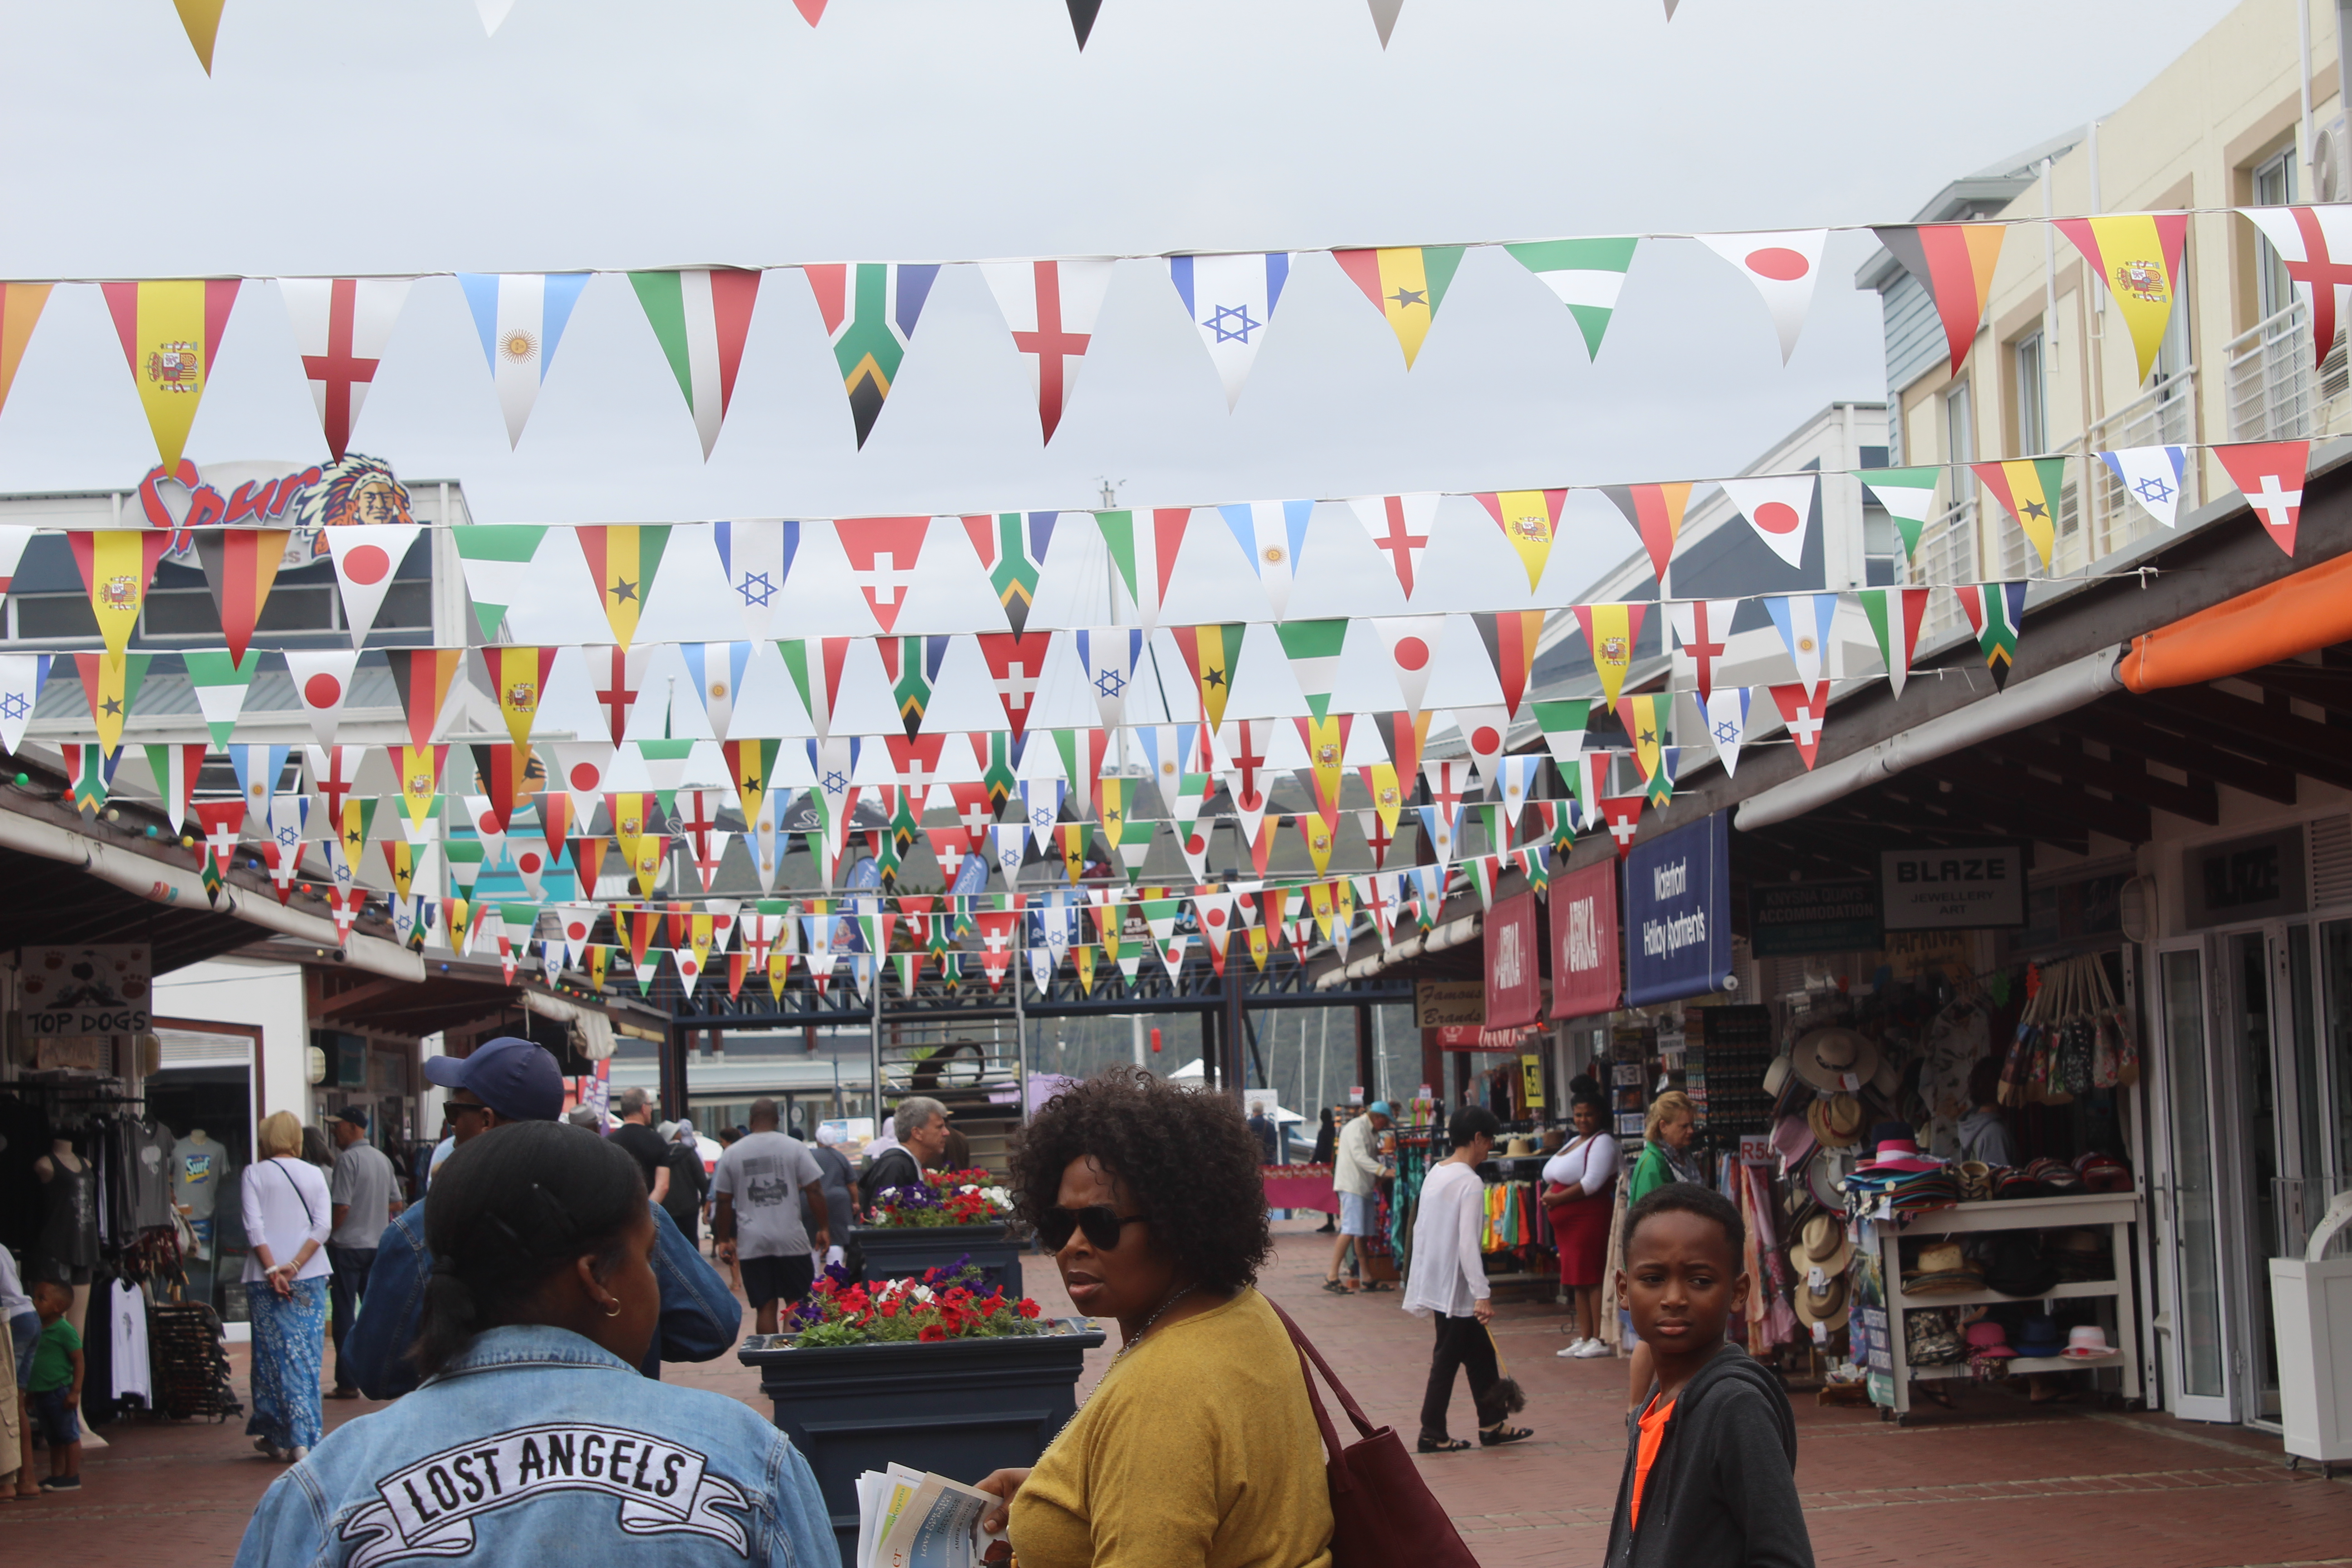 knysna quays with mini flags of the world